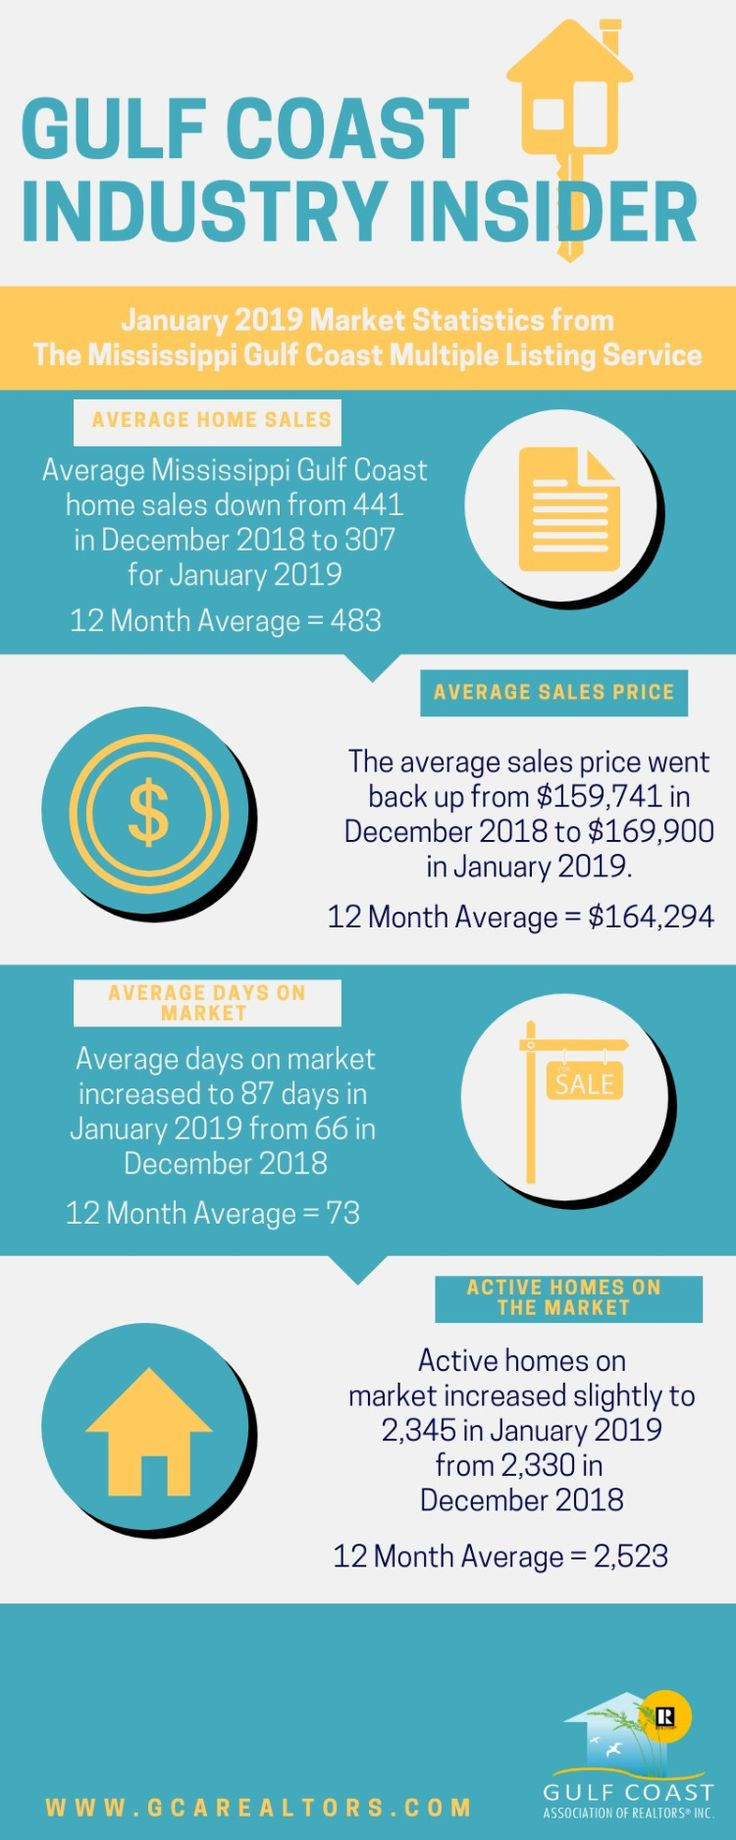 January 2019 Market Statistics from The Mississippi Gulf